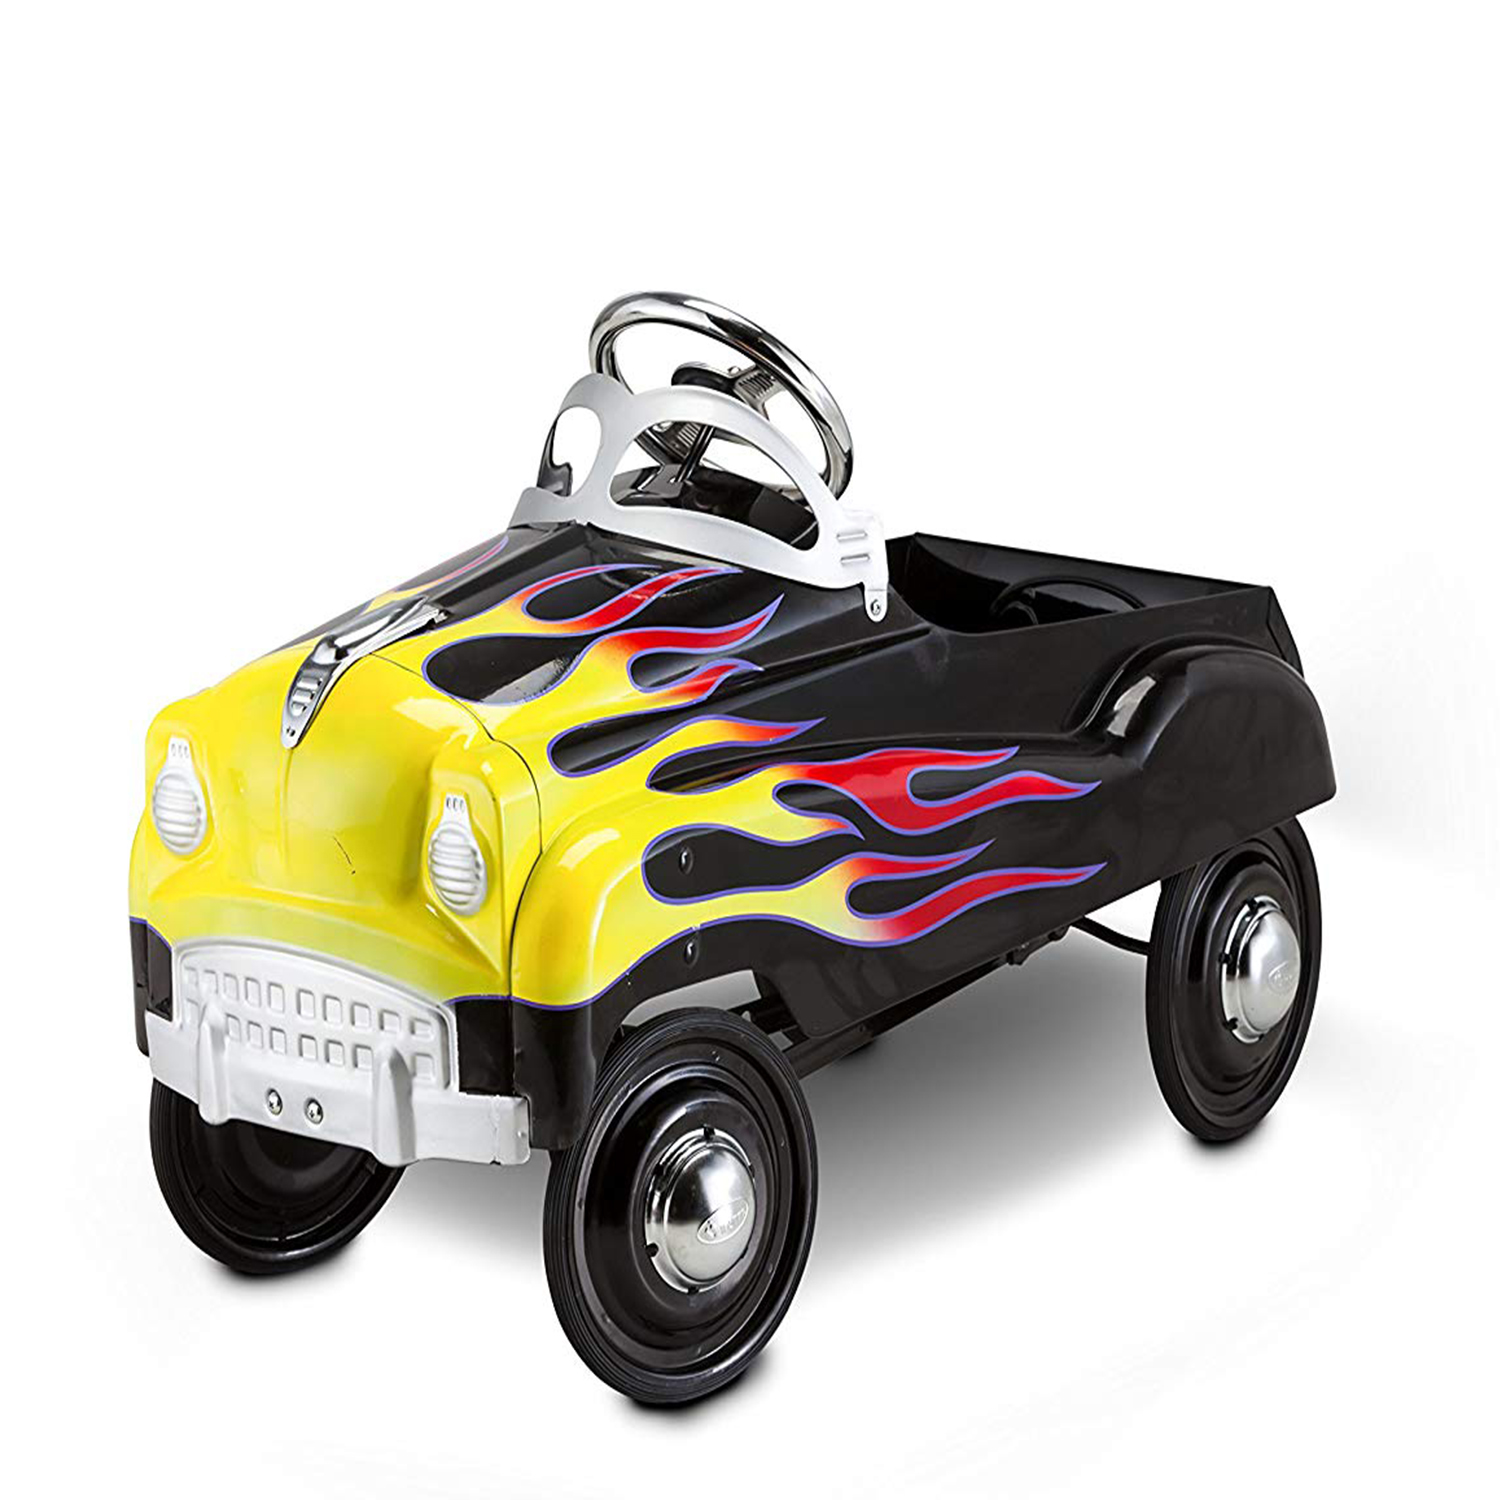 pedal cars WagonWorld - Outdoor Toy Reviews and Buying Advice